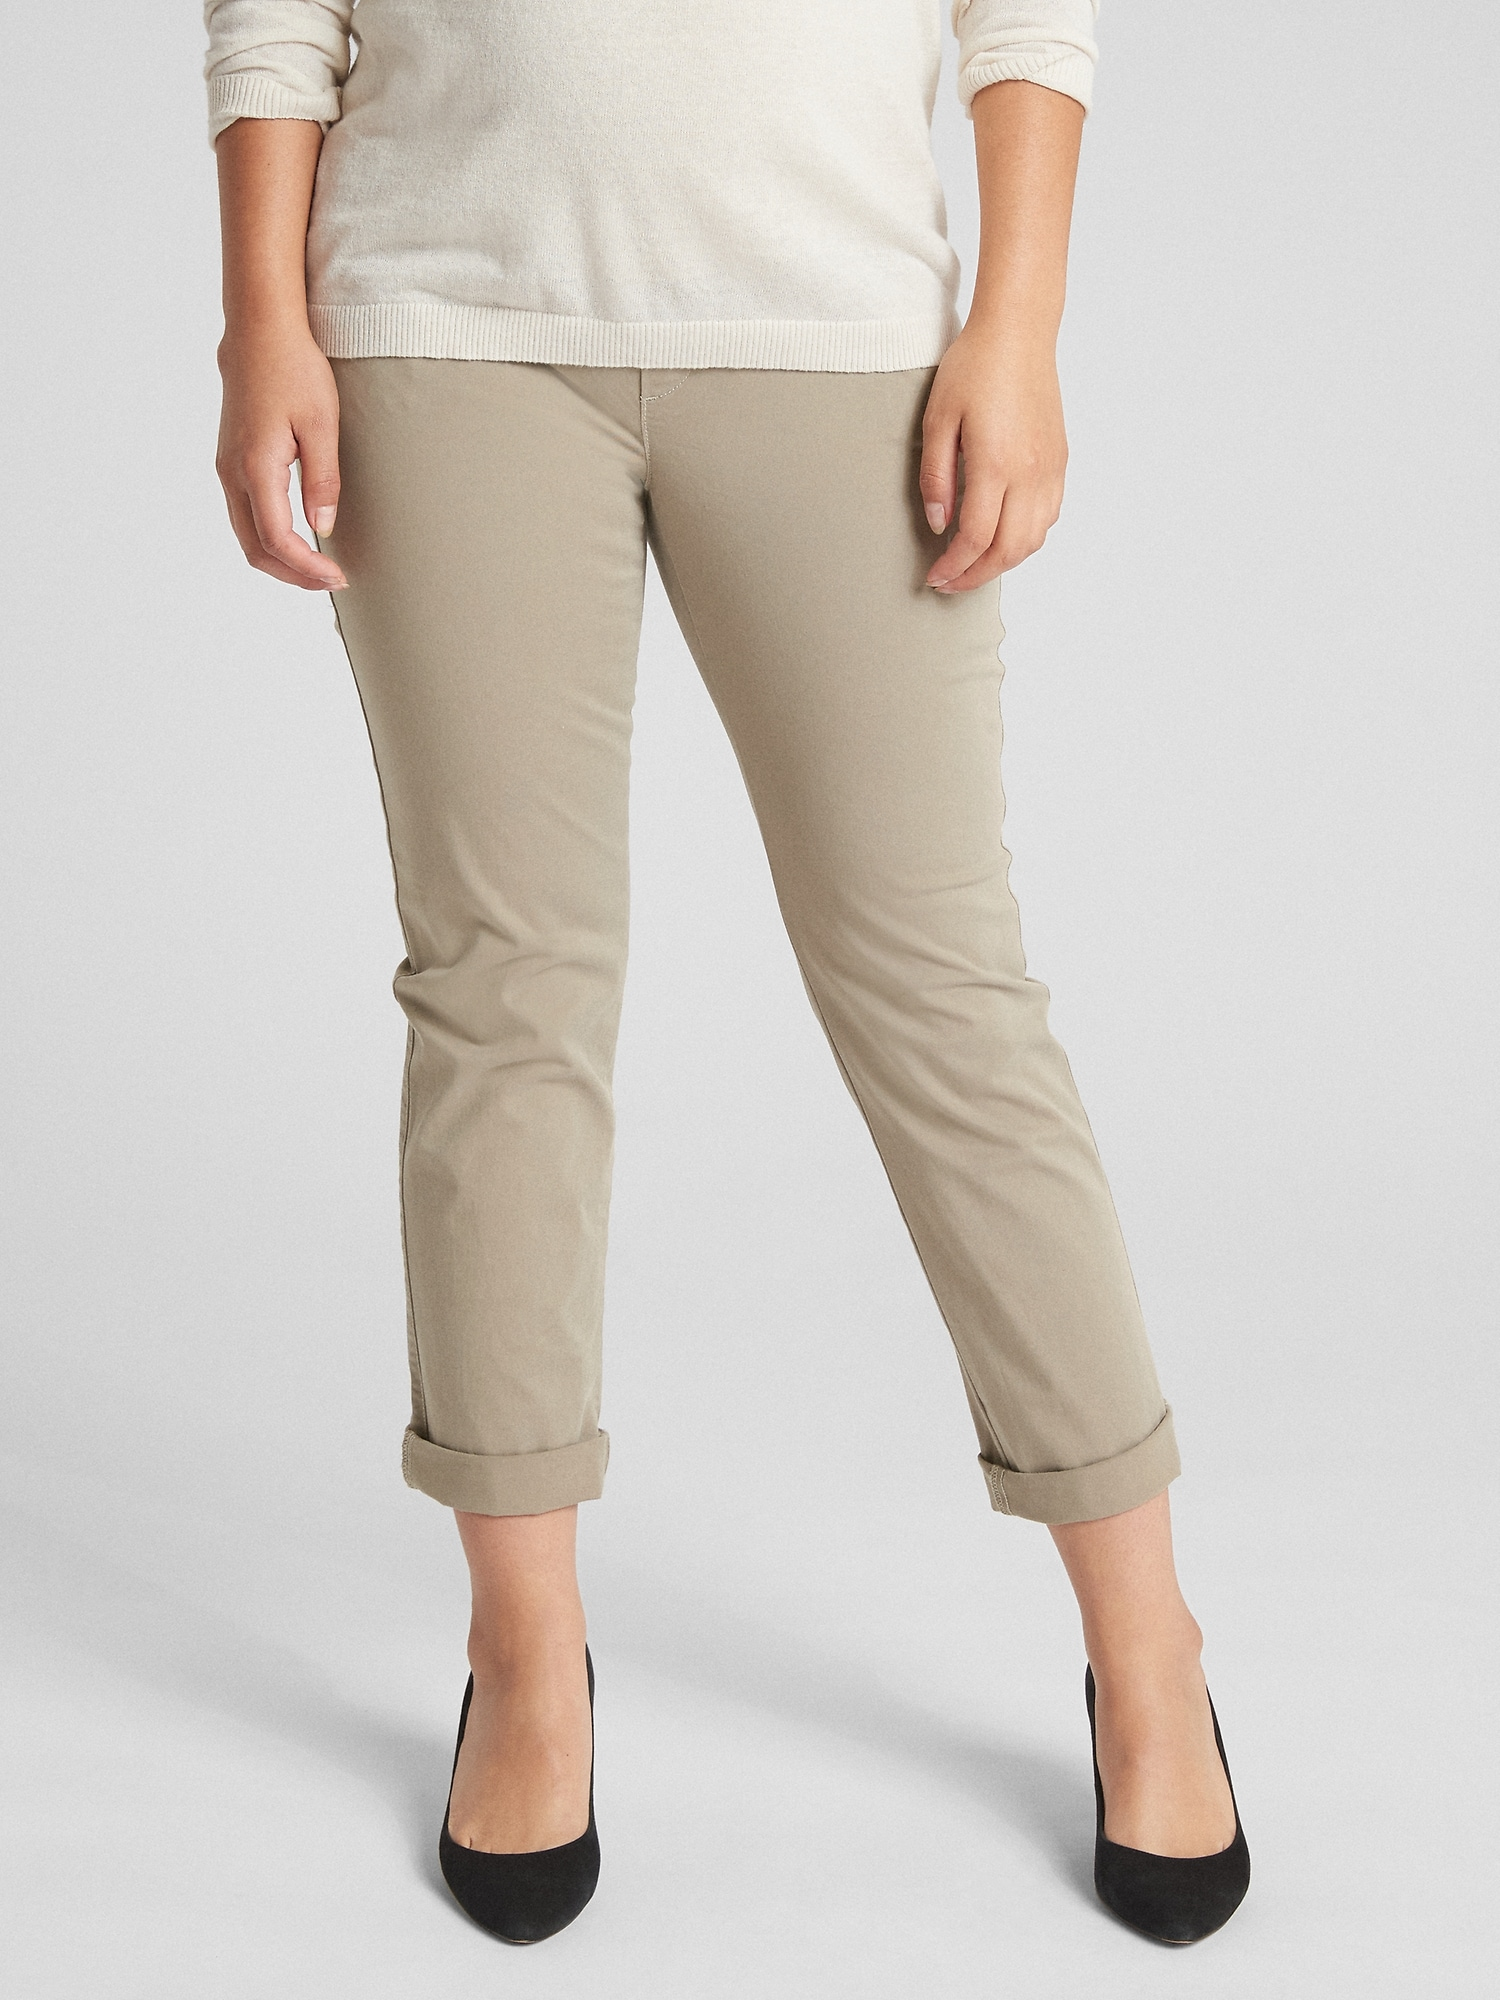 Gap Maternity Full Panel Girlfriend Chino Pants